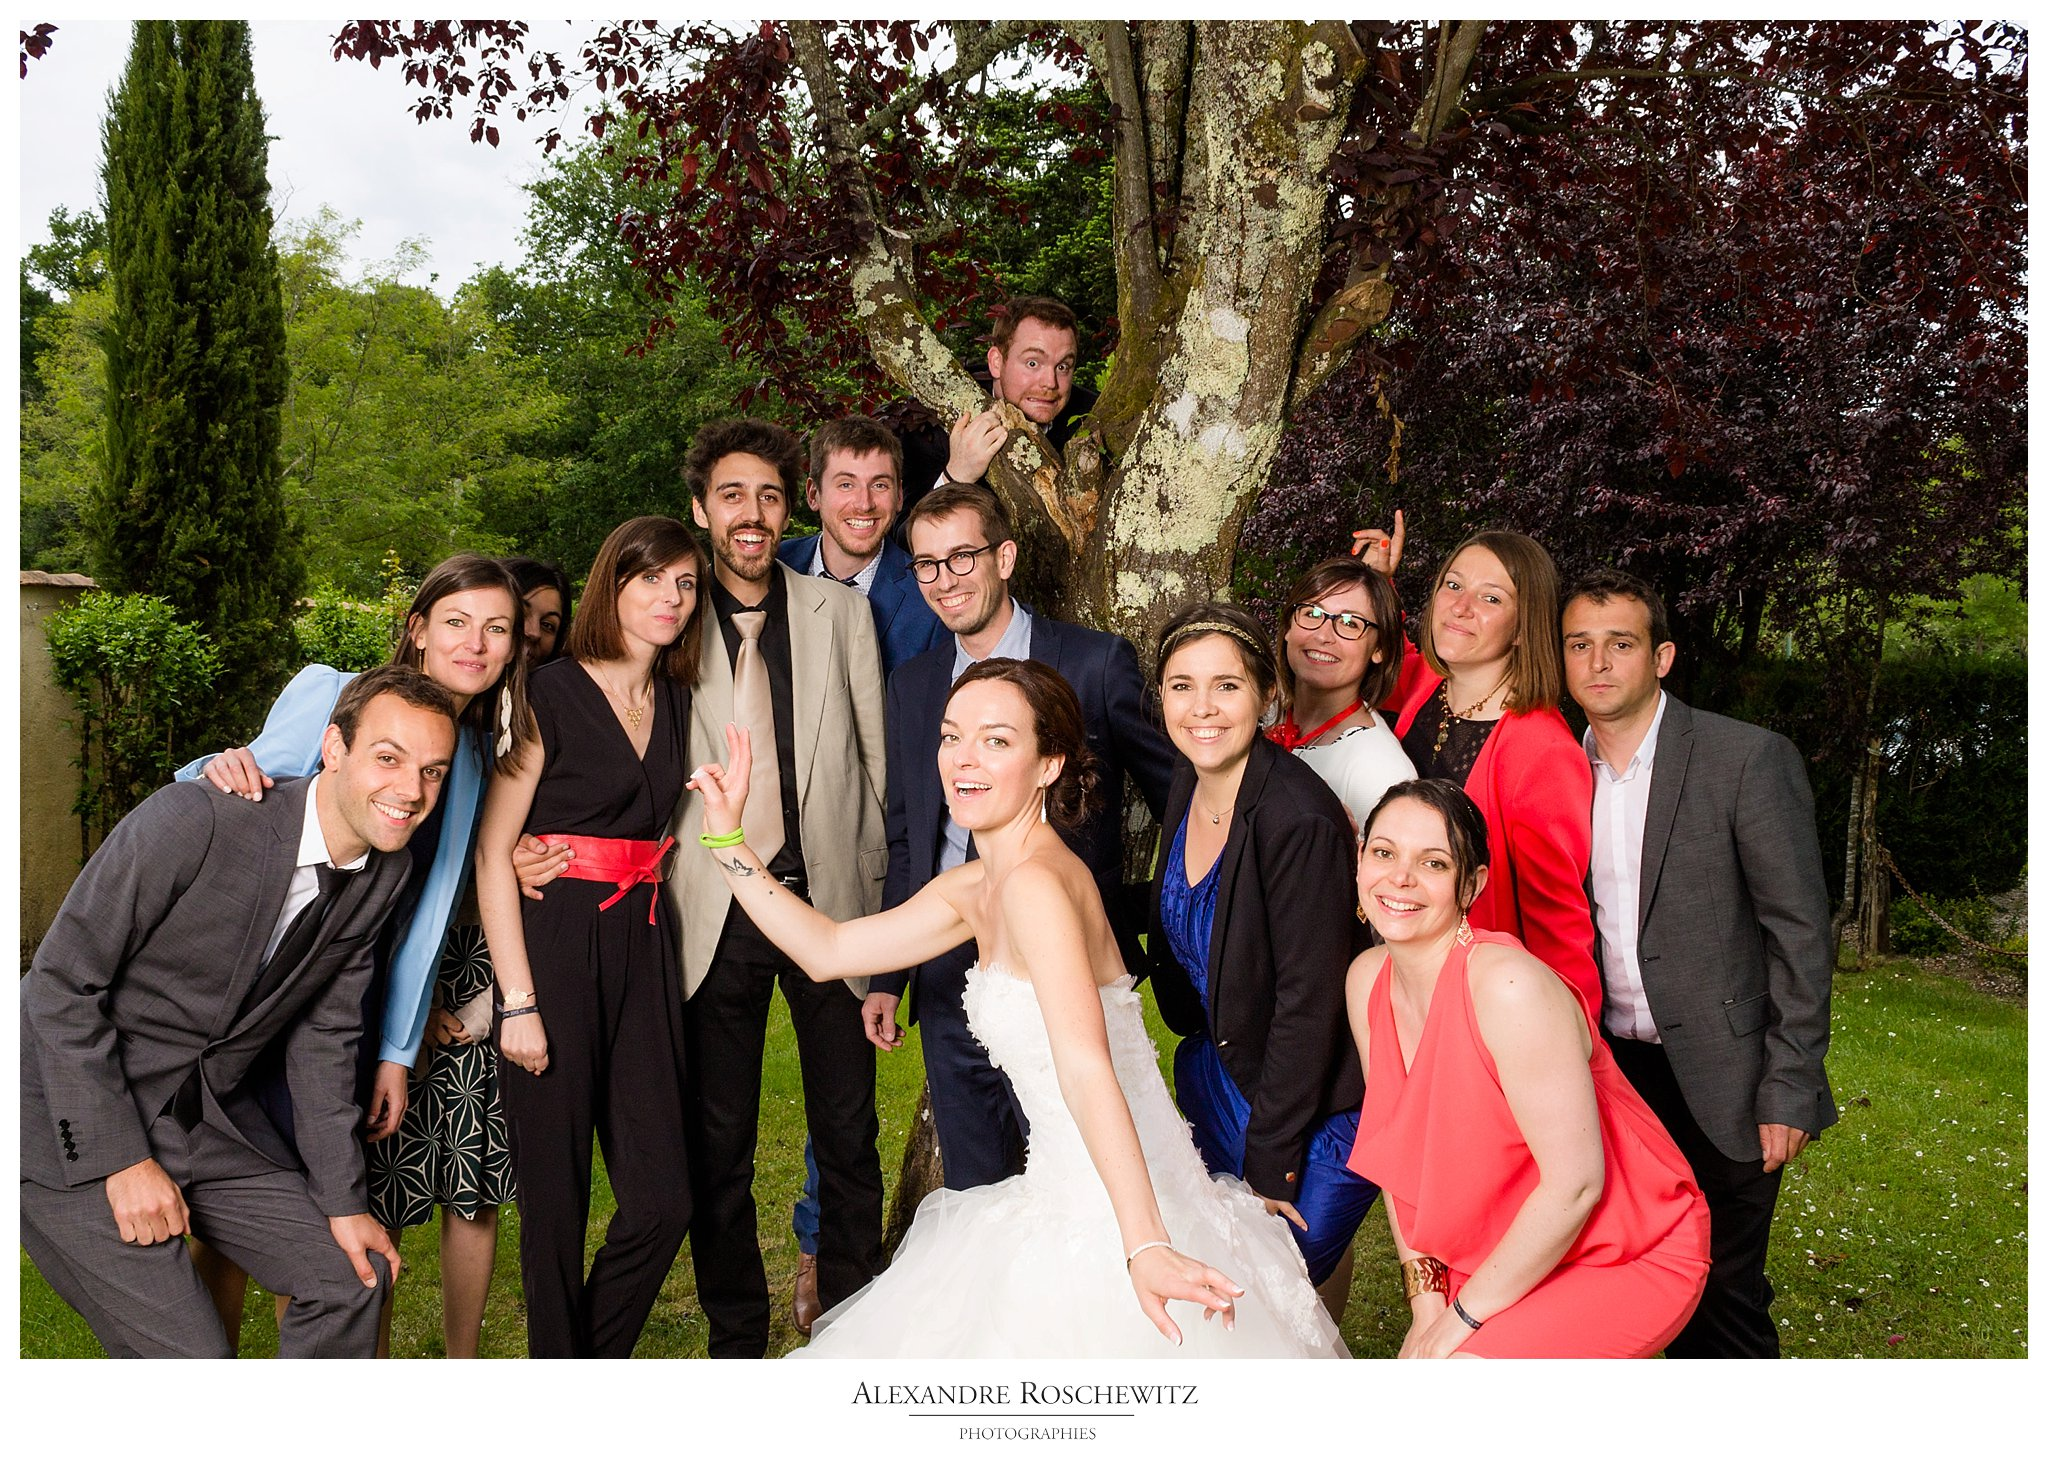 photobooth-mariage-merignac-gironde-maud-anthony-chateau-cujac-alexandre-roschewitz-photographies_1212_2048px